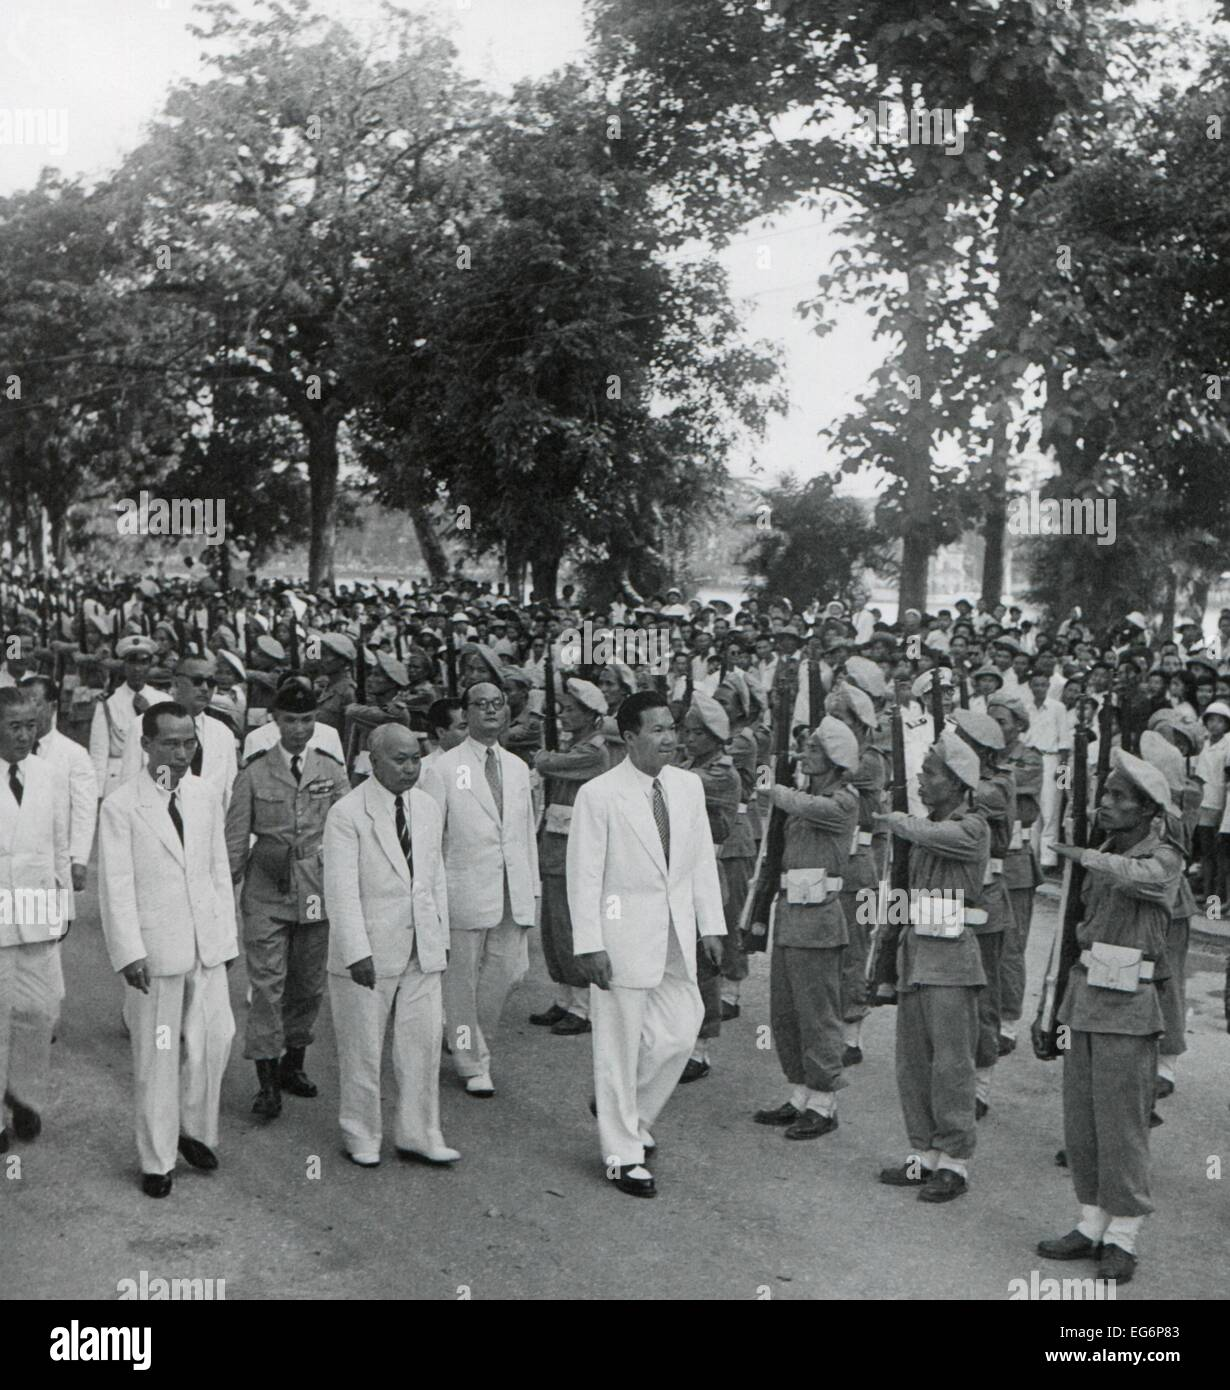 Bao Dai Holds An Inspection Of Vietnamese Troops Ca 1949 55 After